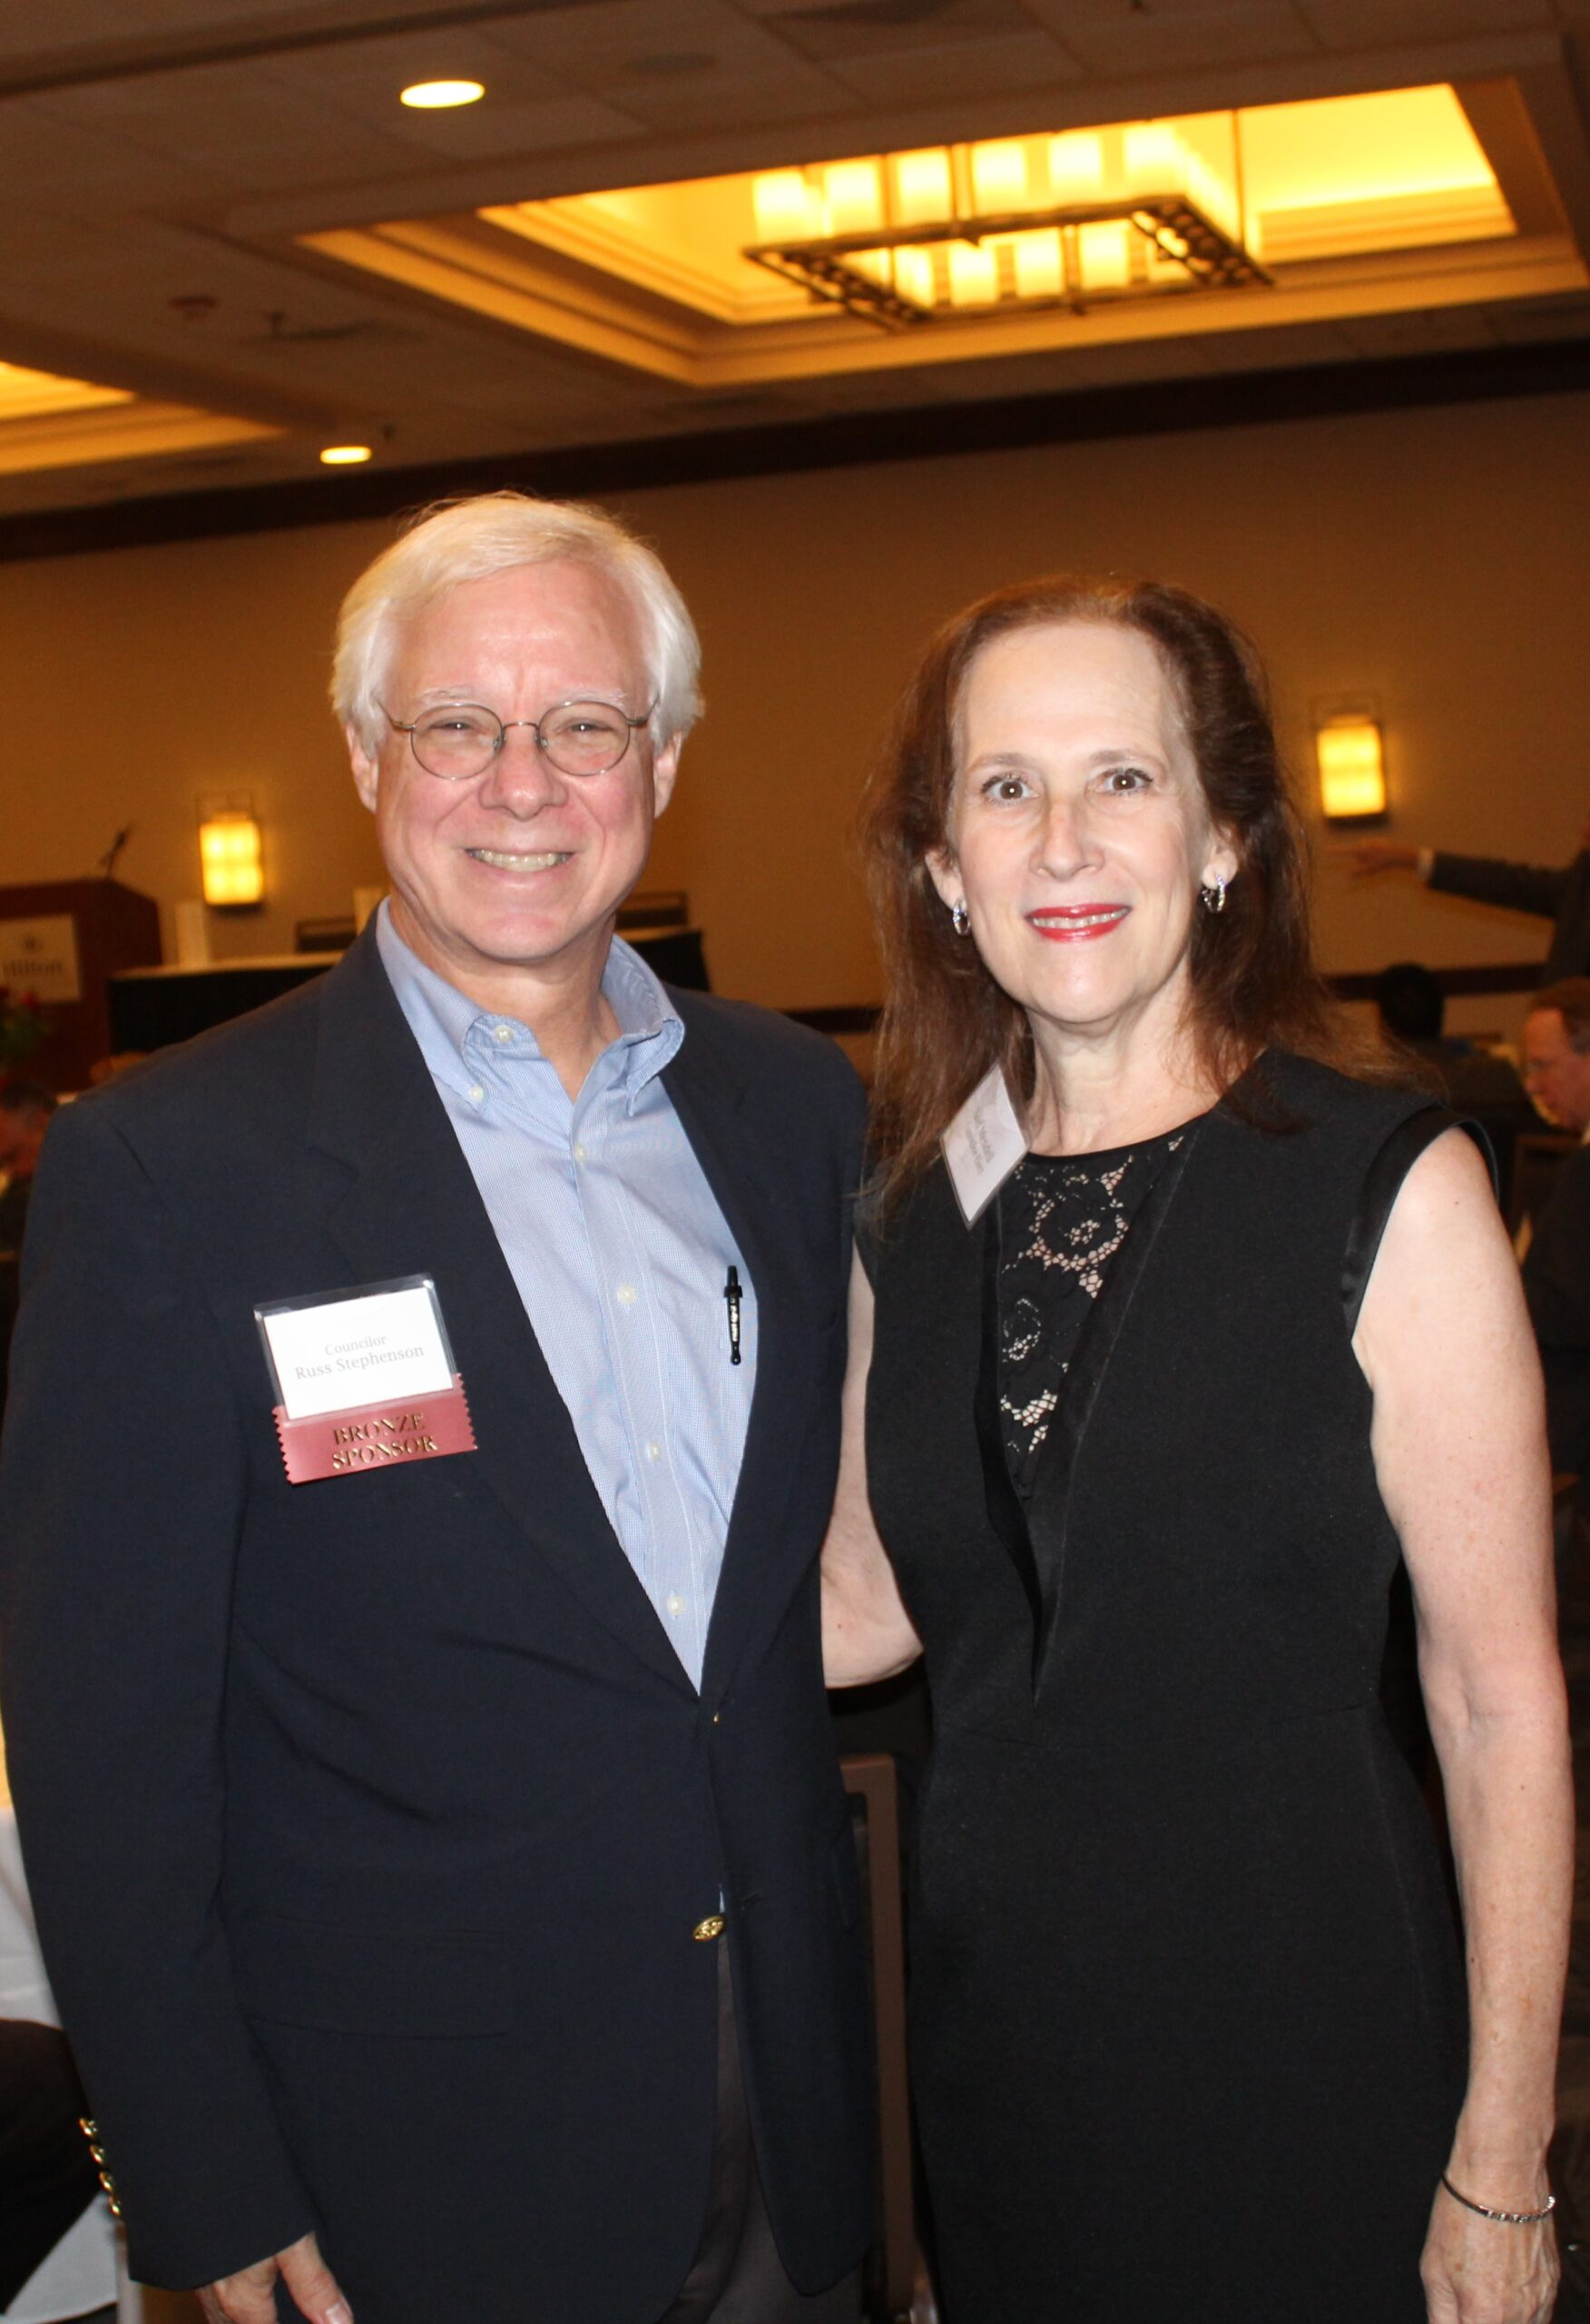 Raleigh City Councilor Russ Stephenson with Councilor-Elect Stef Mendell